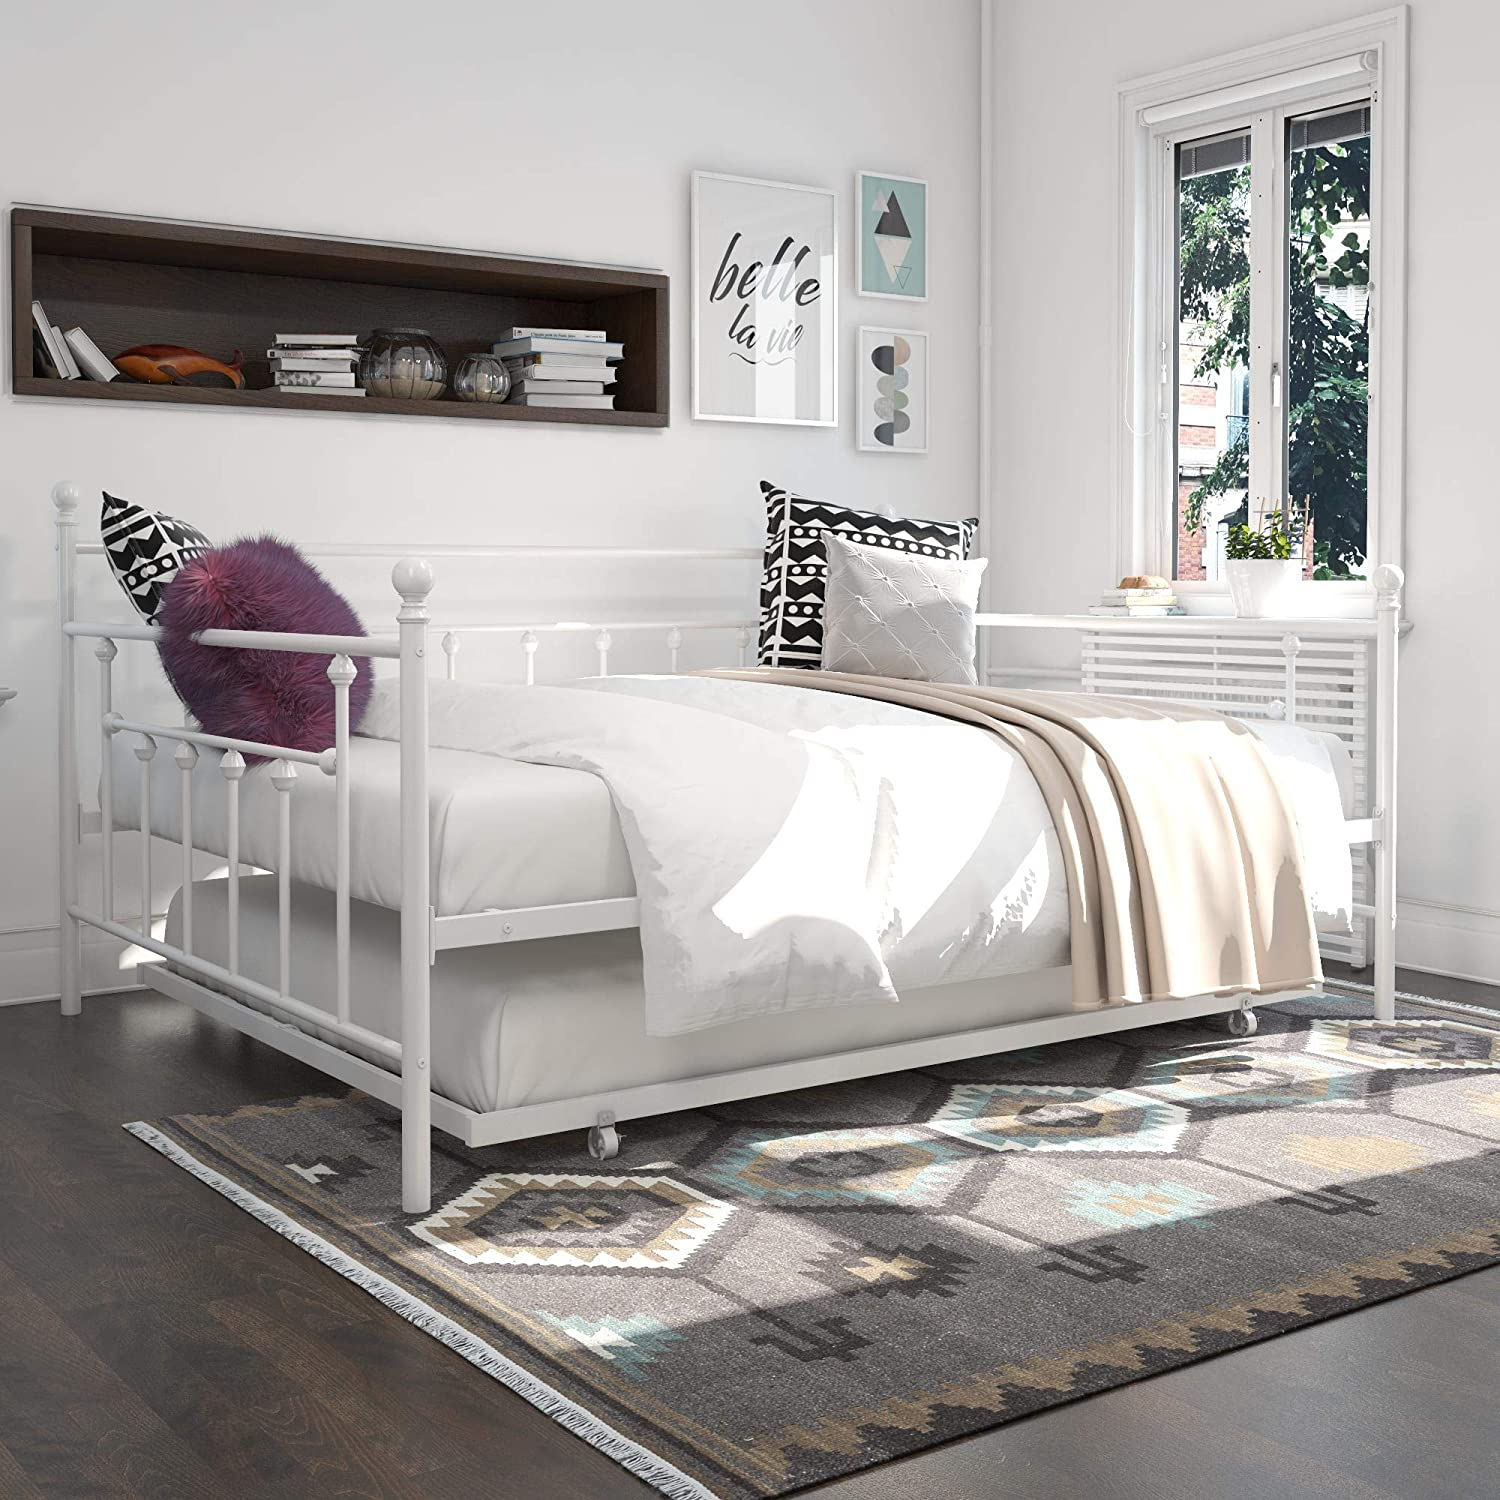 What You Should Look For On A Daybed?